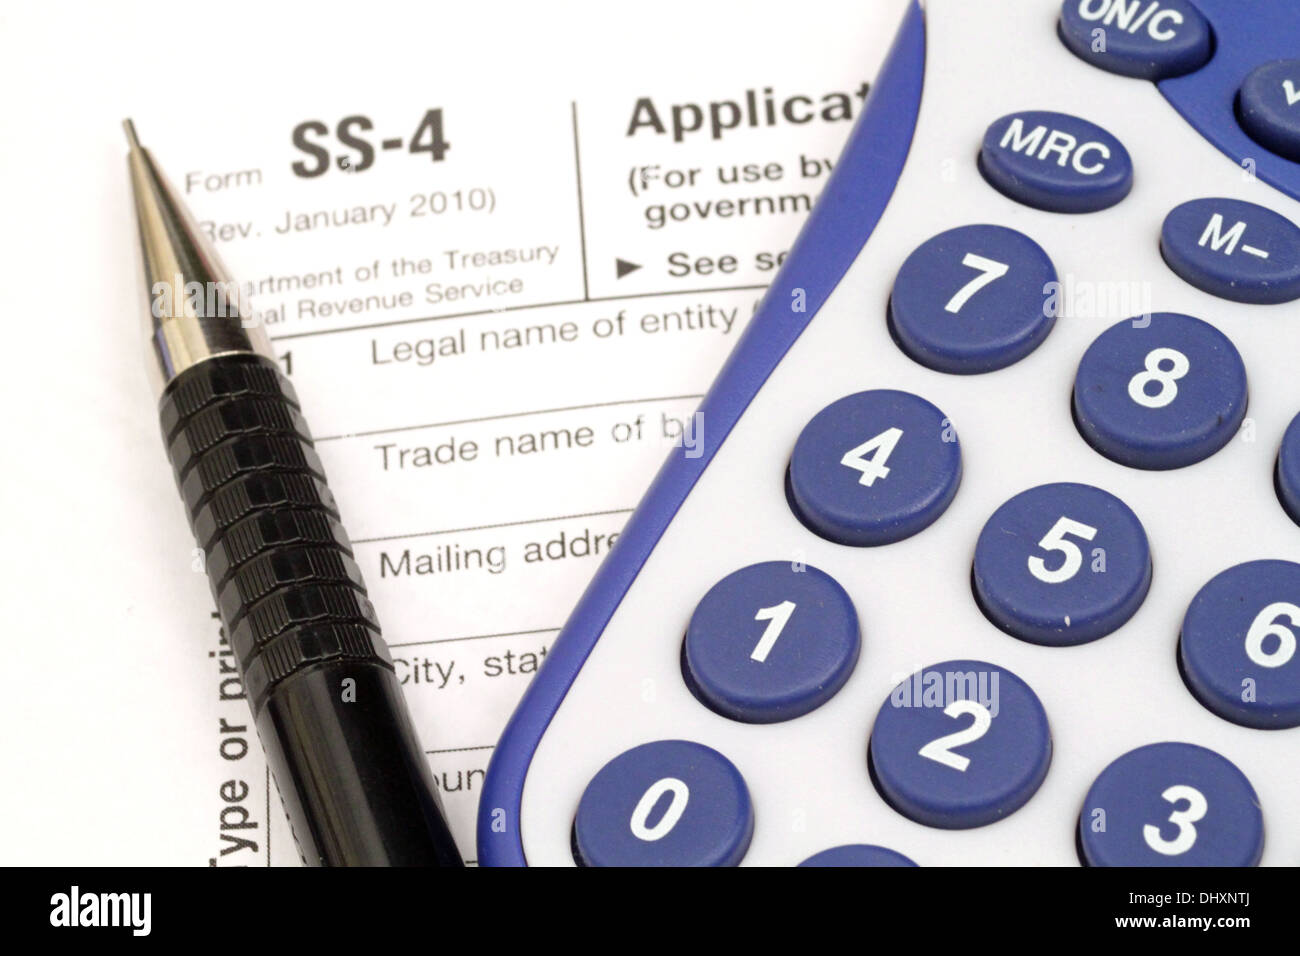 IRS Form SS-4 with tax prep tools Stock Photo: 62668162 - Alamy